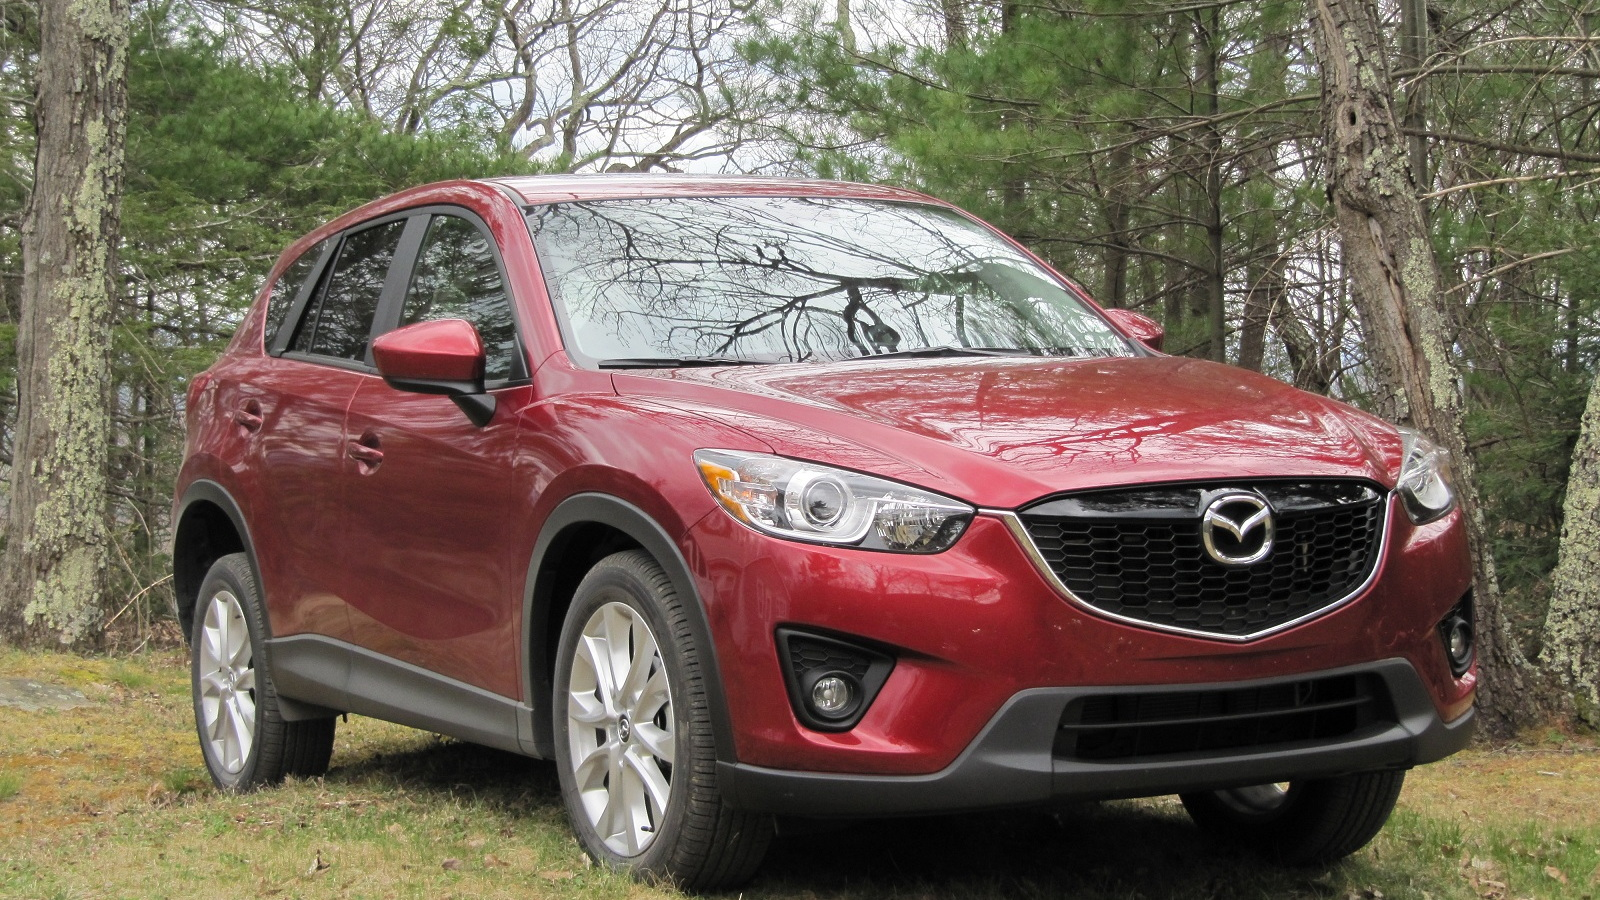 Mazda Cx 5 Gas Mileage >> 2013 Mazda Cx 5 2012 Mazda3 Real World Gas Mileage Boost